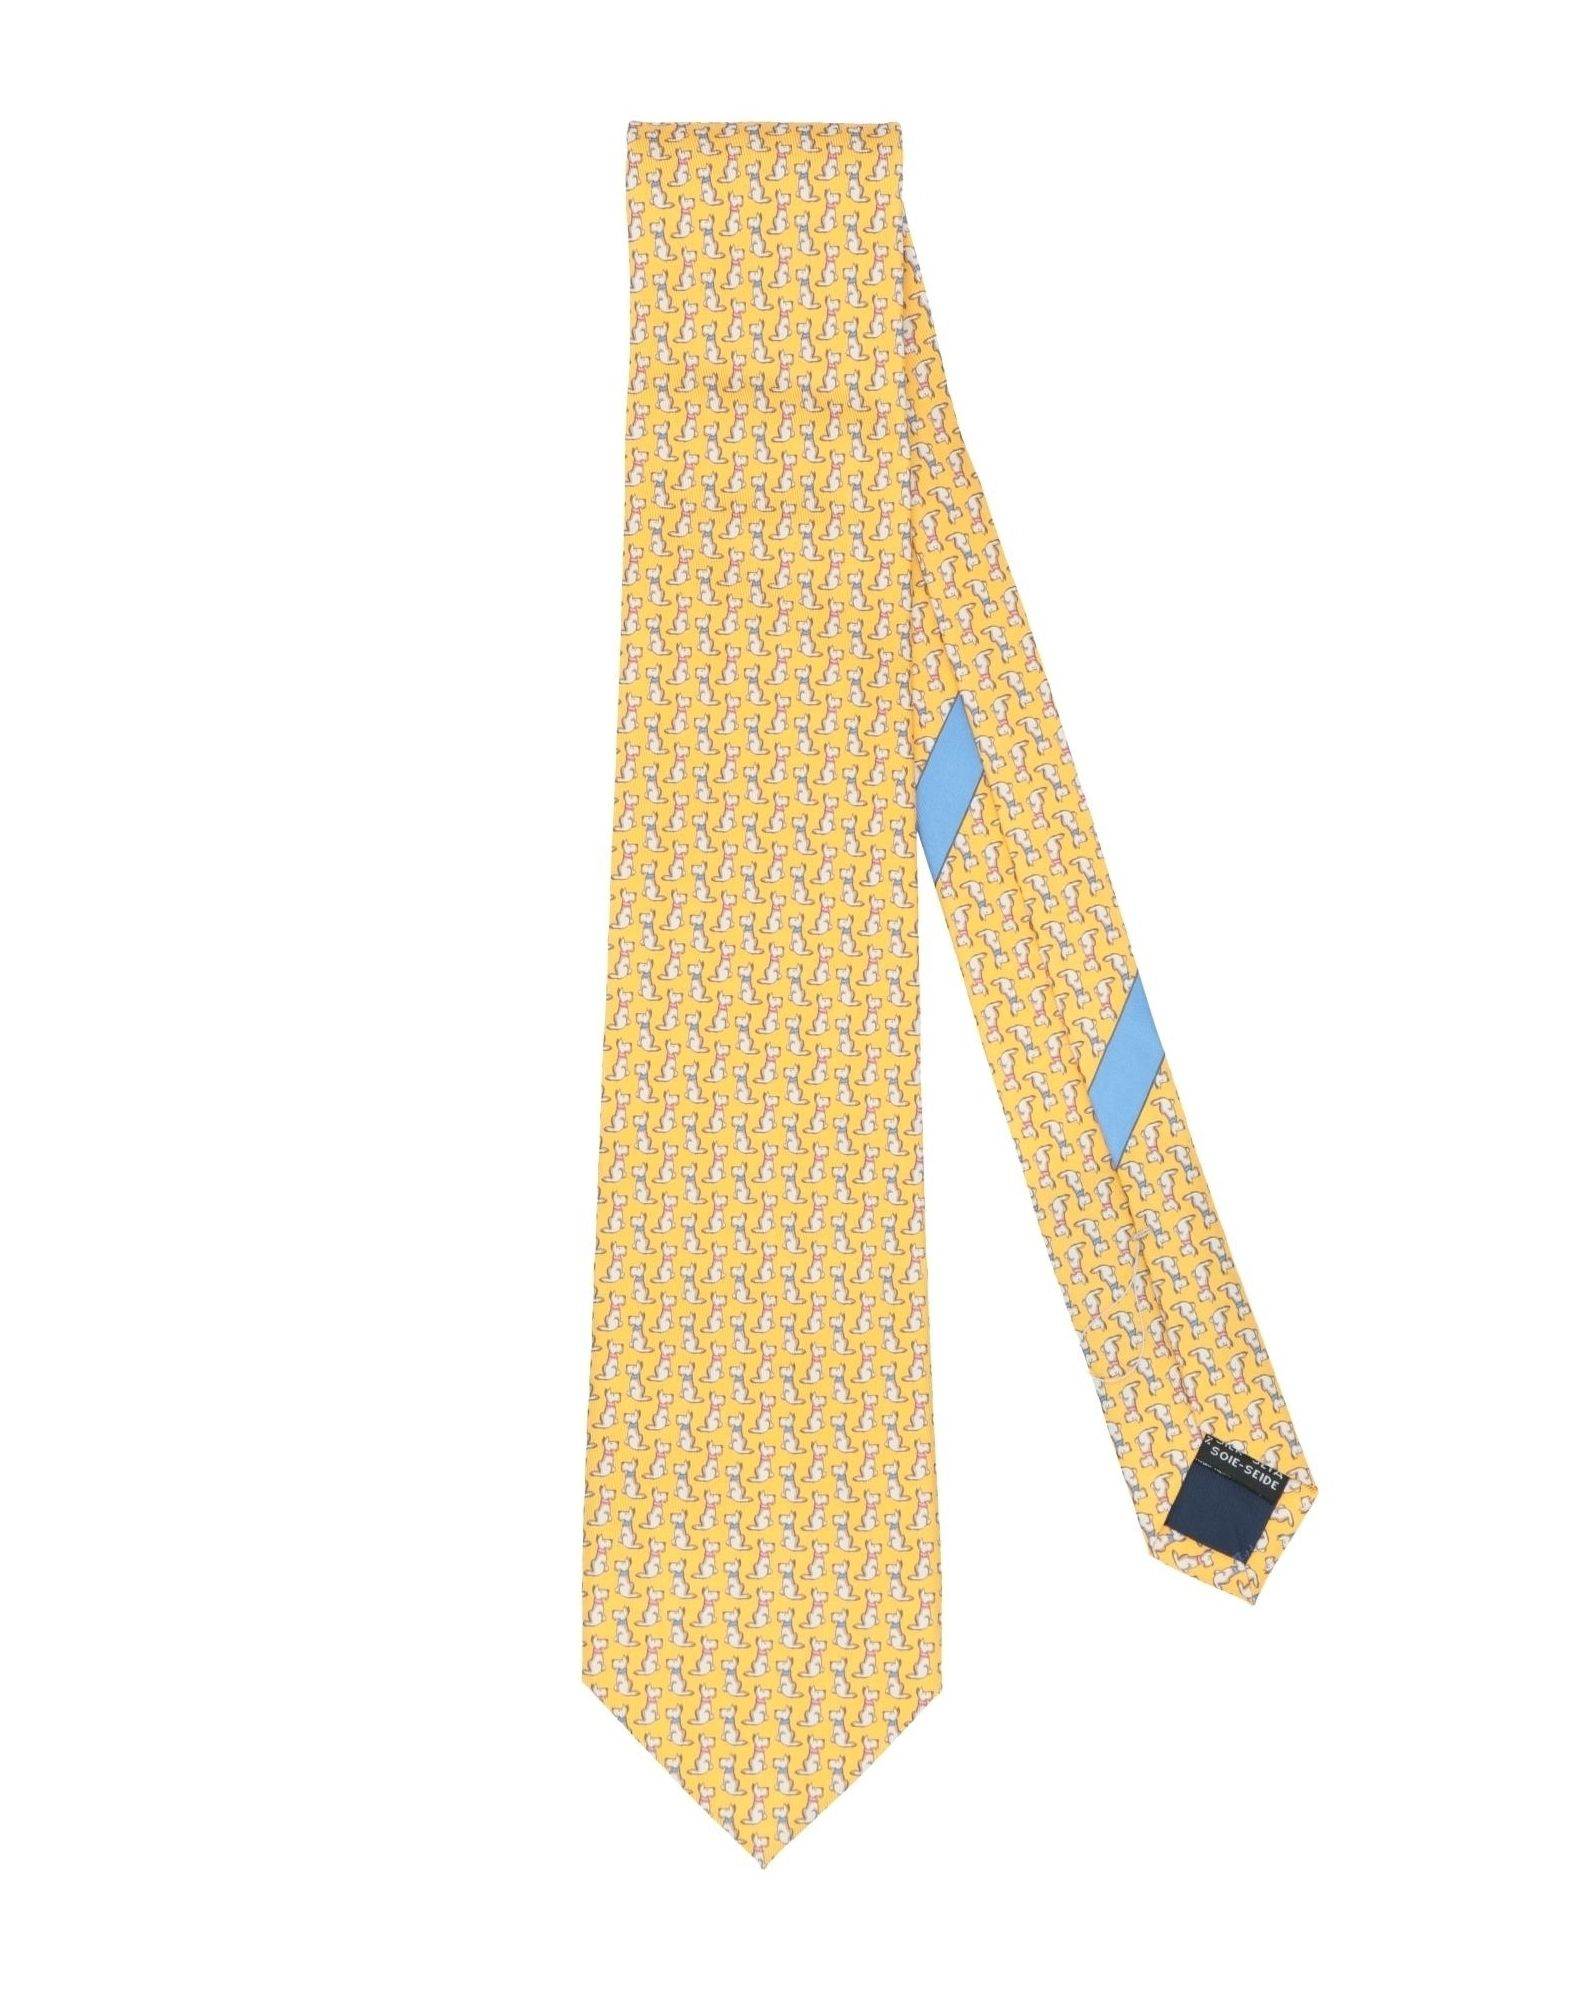 40277d43c6c2 Salvatore Ferragamo Ties In Yellow | ModeSens